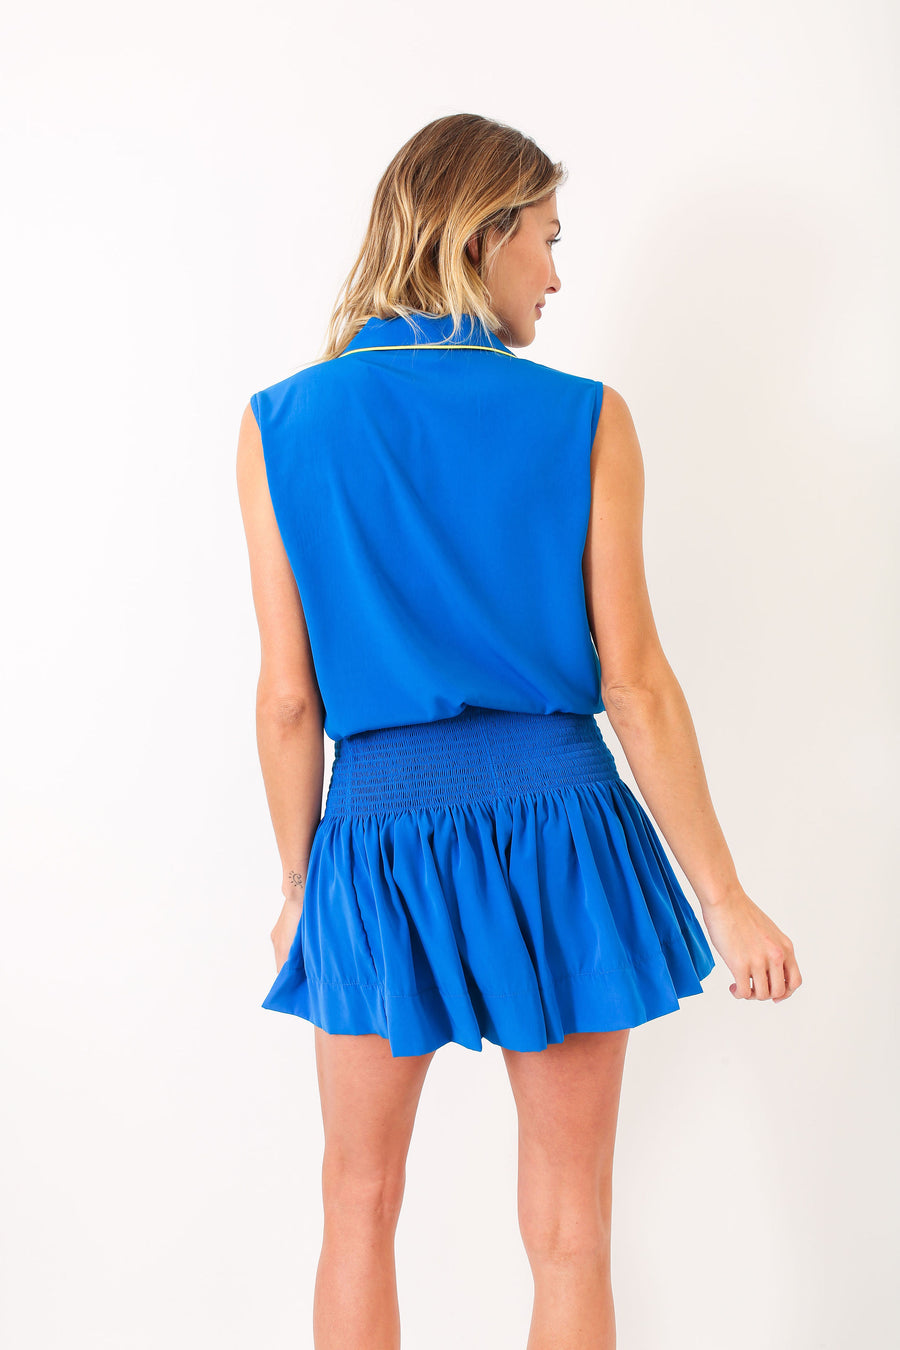 ERICA SKIRT PACIFIC BLUE